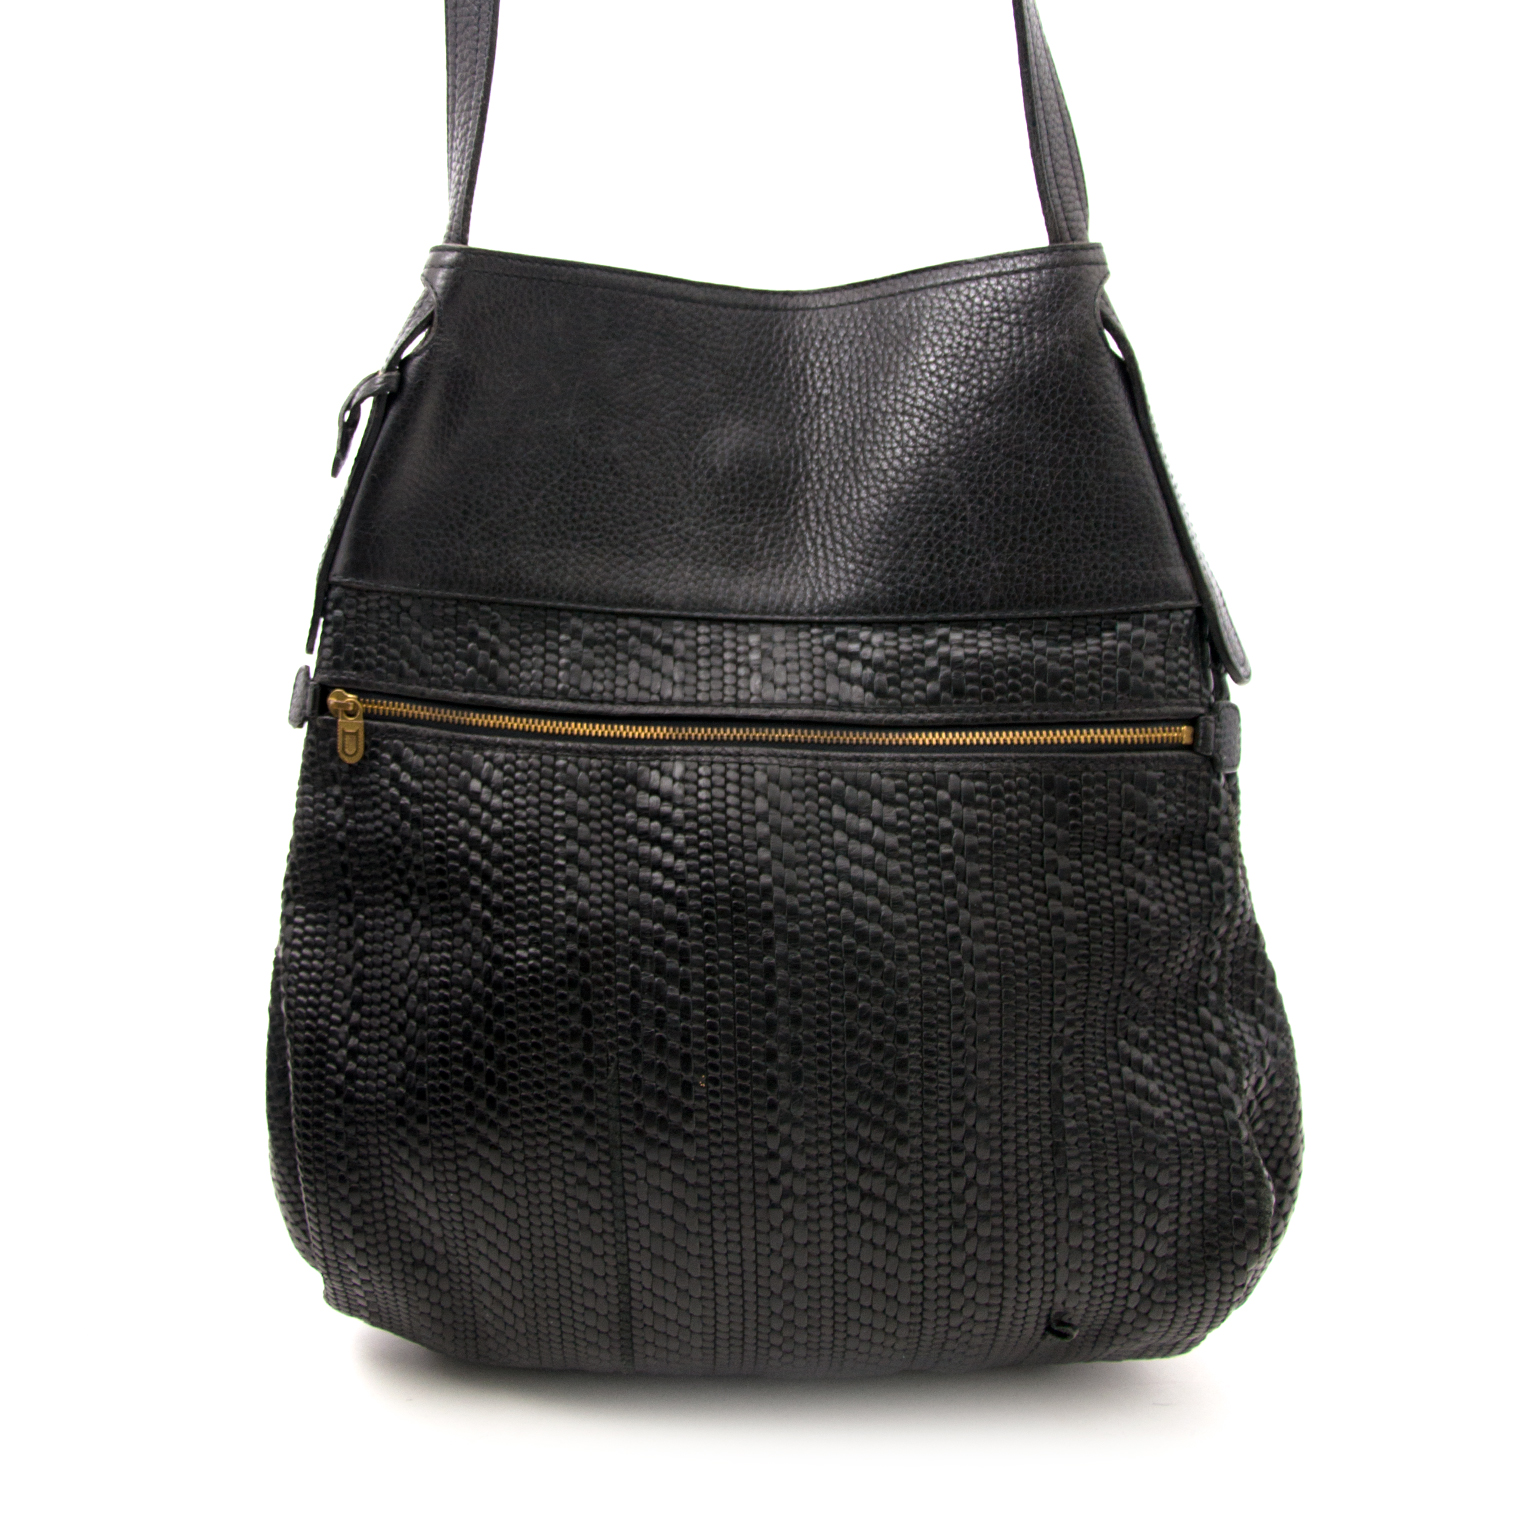 Buy a secondhand Delvaux Black Faust Toile De Cuir Bag at Labellov.com